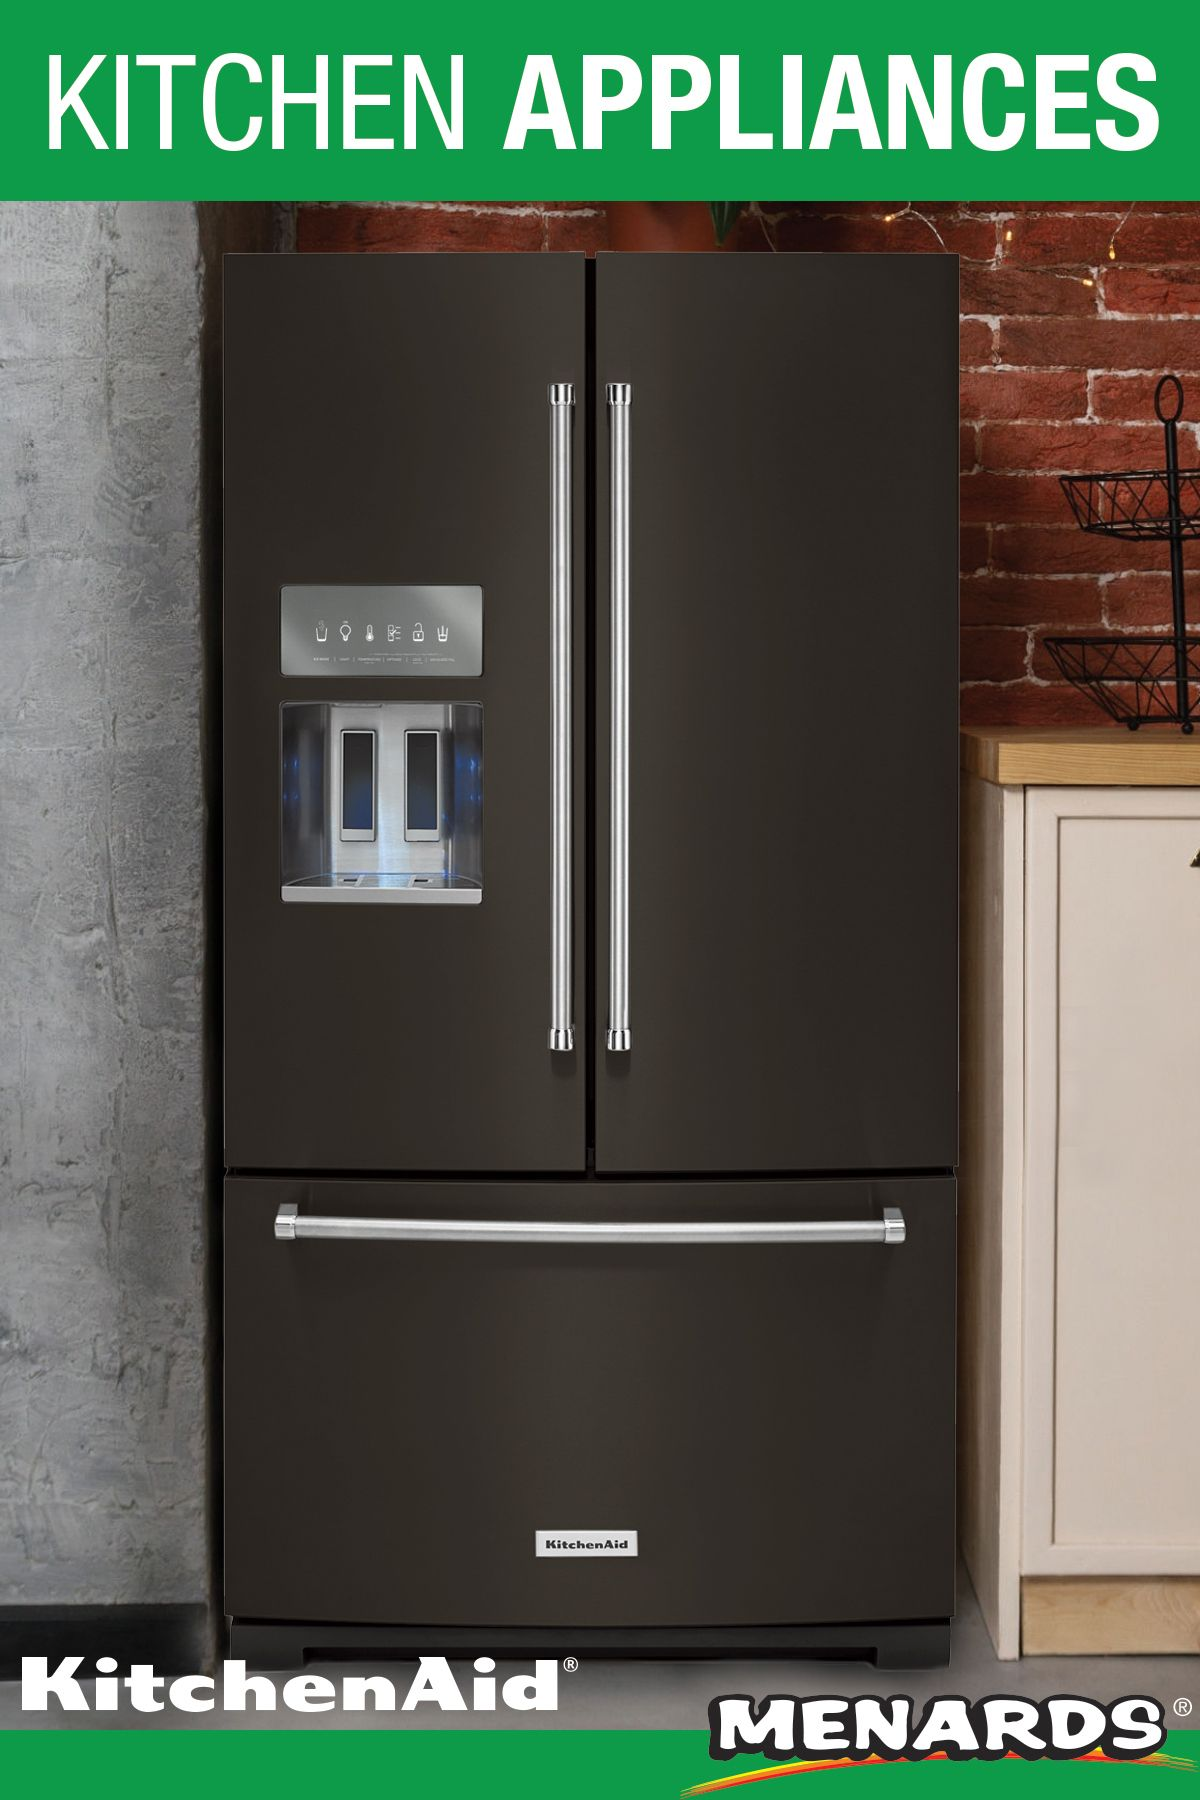 This 26 8 Cubic Foot Capacity French Door Refrigerator From Kitchenaid Helps Fresh Produce Stay That Way W In 2020 Kitchen Aid French Door Refrigerator Best Appliances